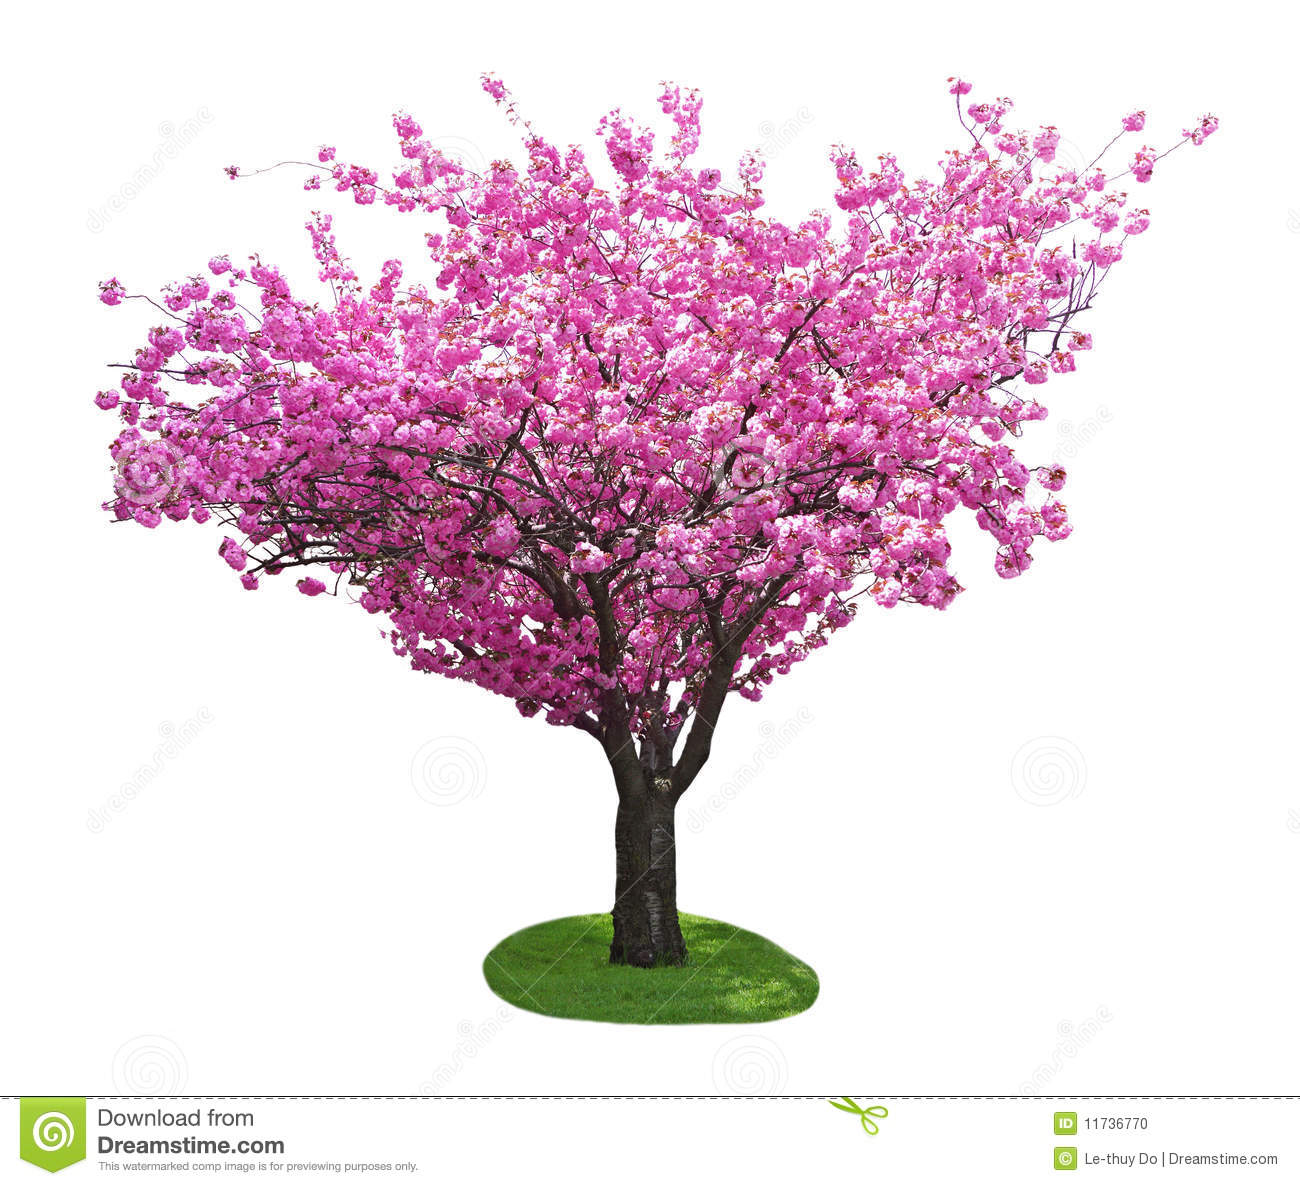 christian single women in cherry tree Symbolism of tree of life across different cultures, discovering a magical key to how life manifests itself, a complex formula of existence, the flow of creation from divine to earth and back to divine.